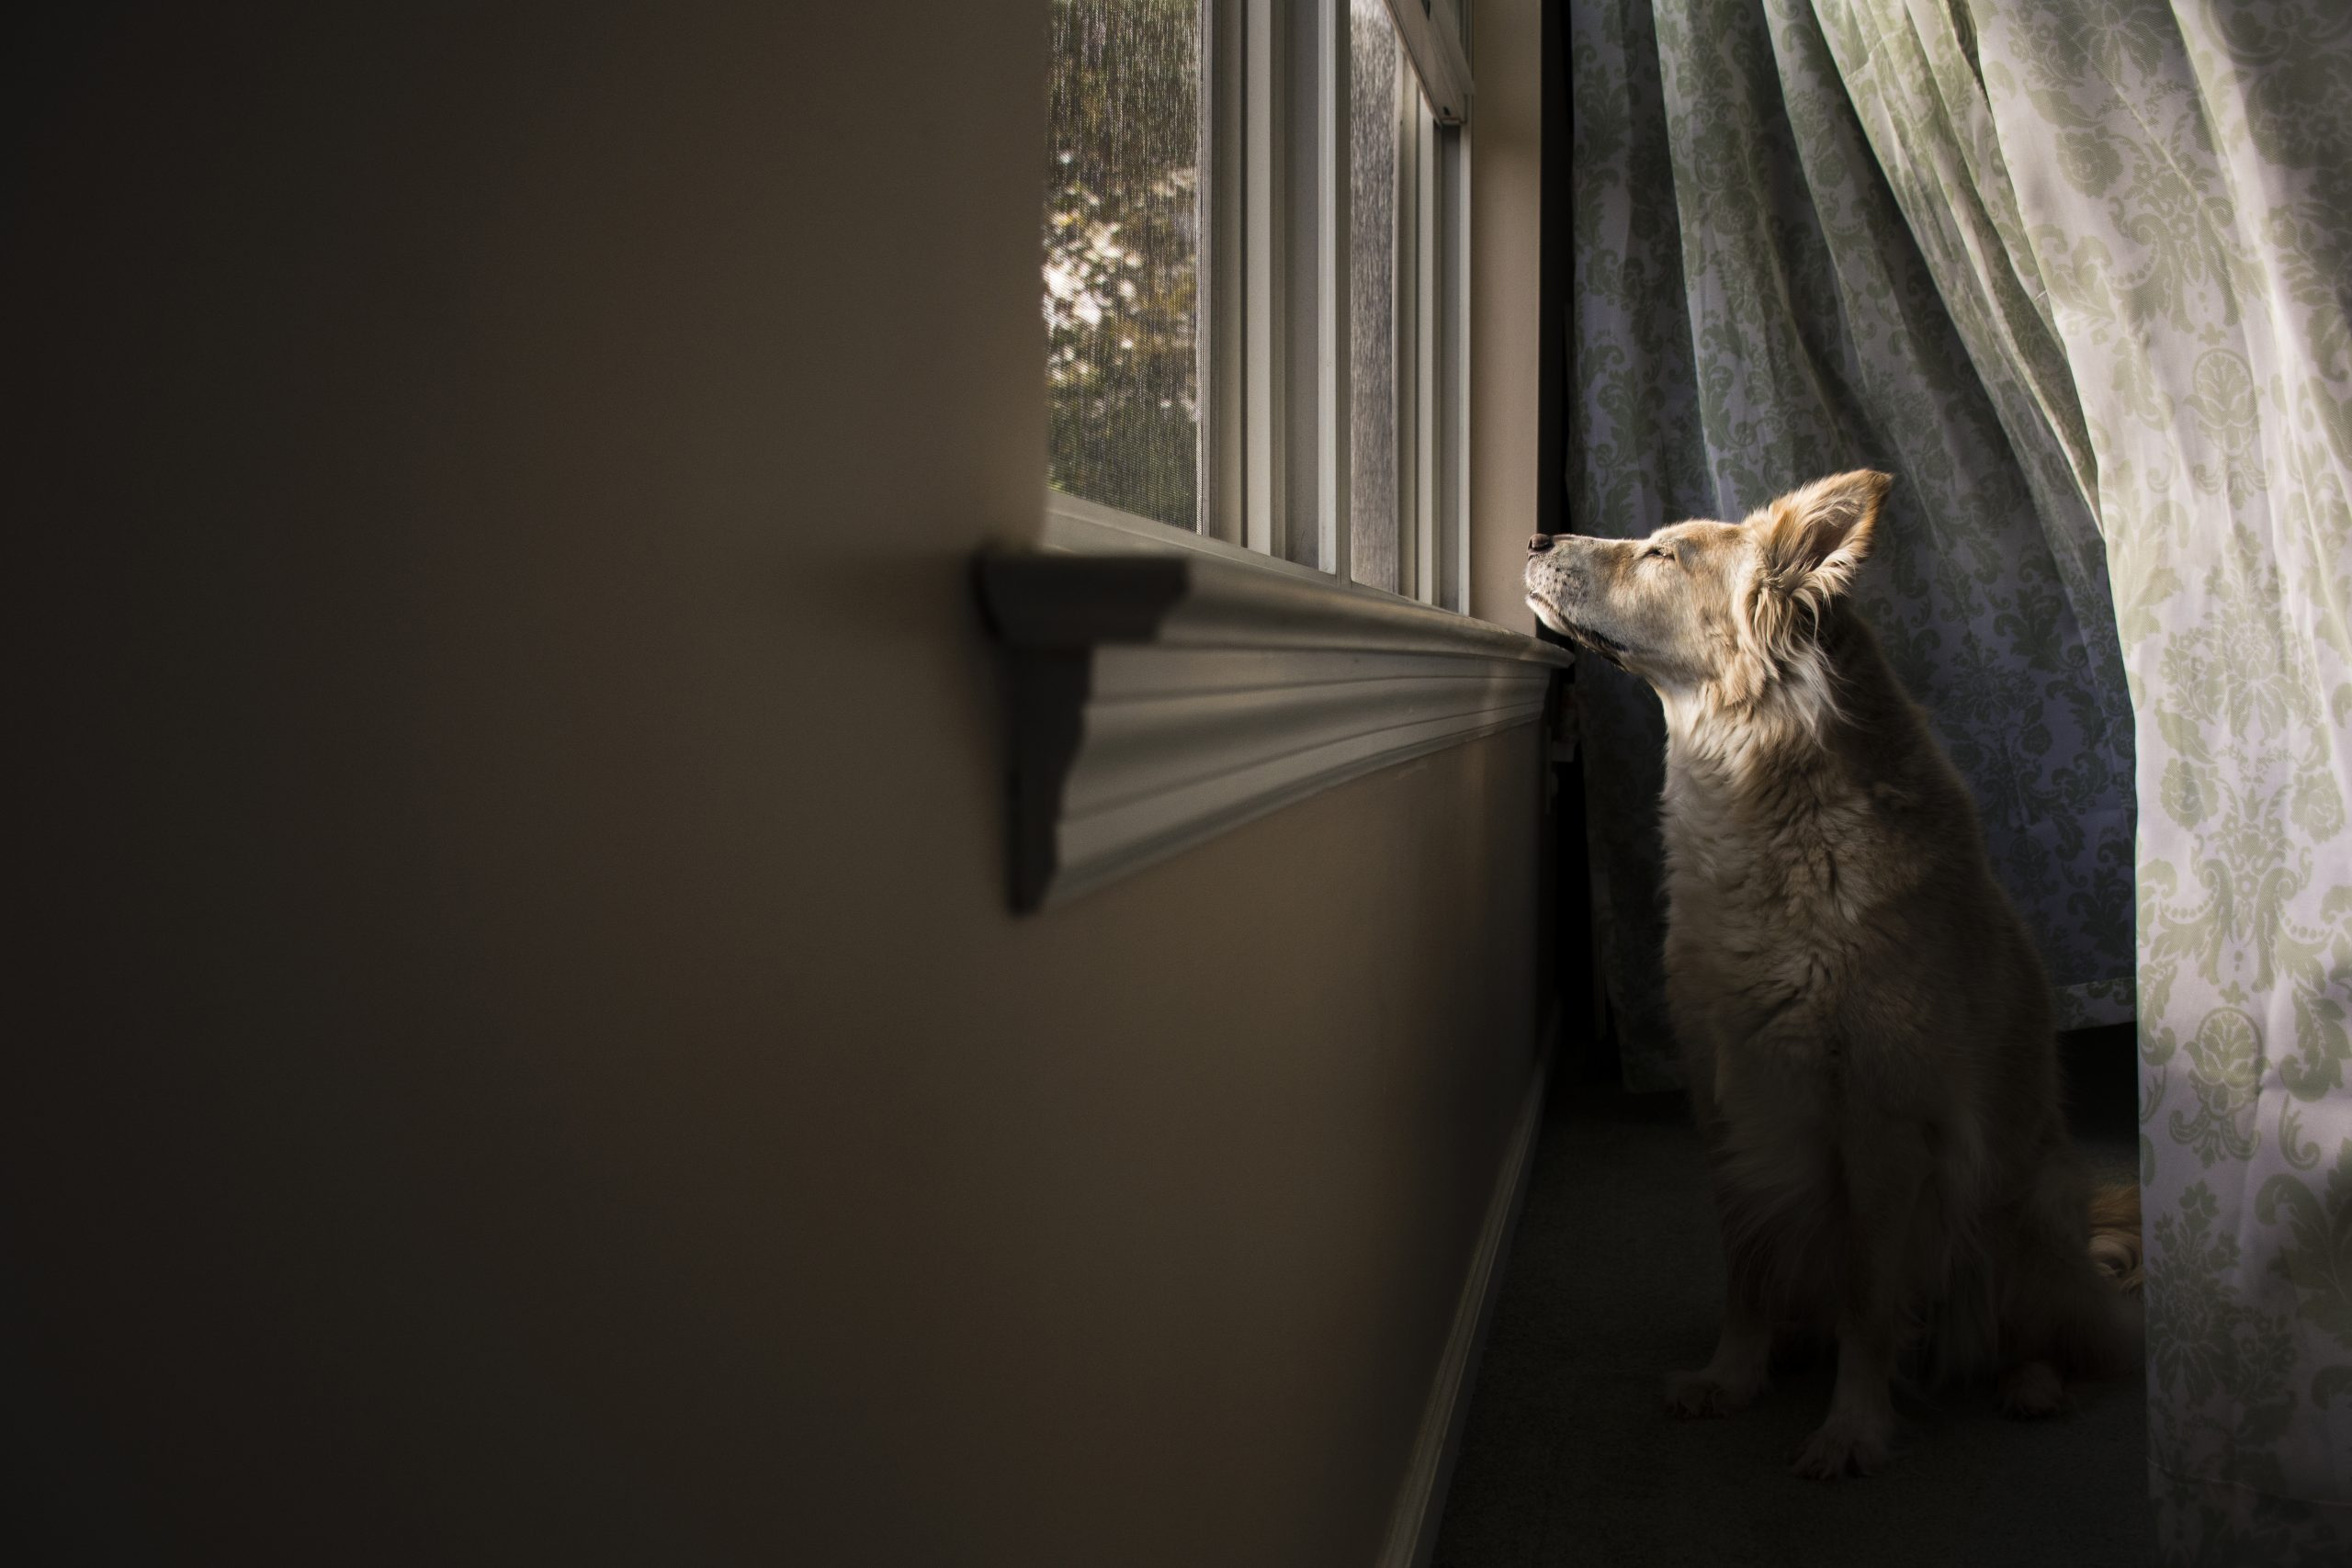 Dog looking through window while sitting at home